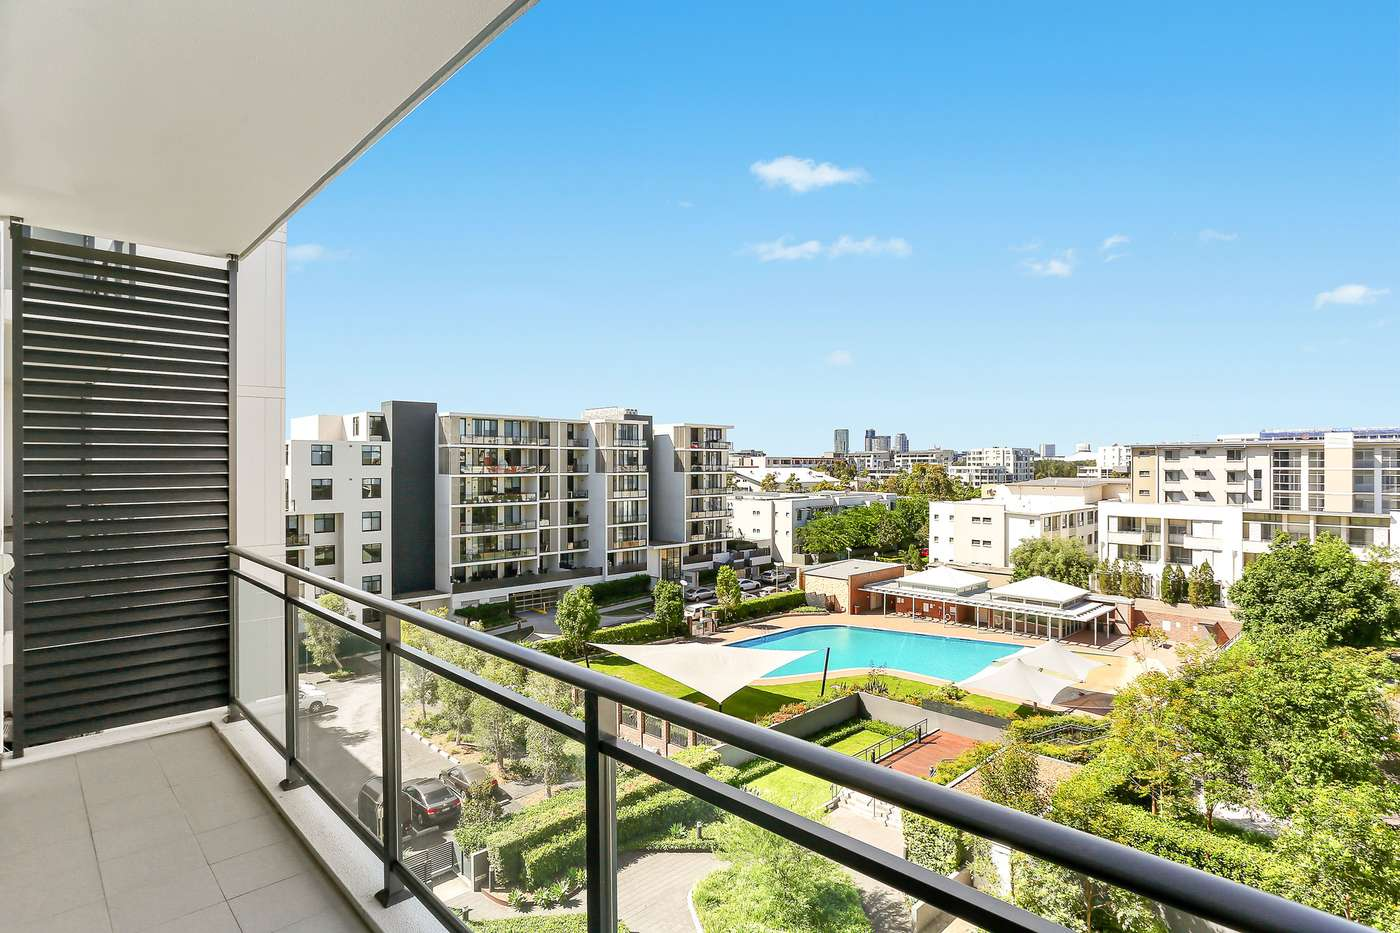 Main view of Homely apartment listing, 615/14 Baywater Drive, Wentworth Point, NSW 2127